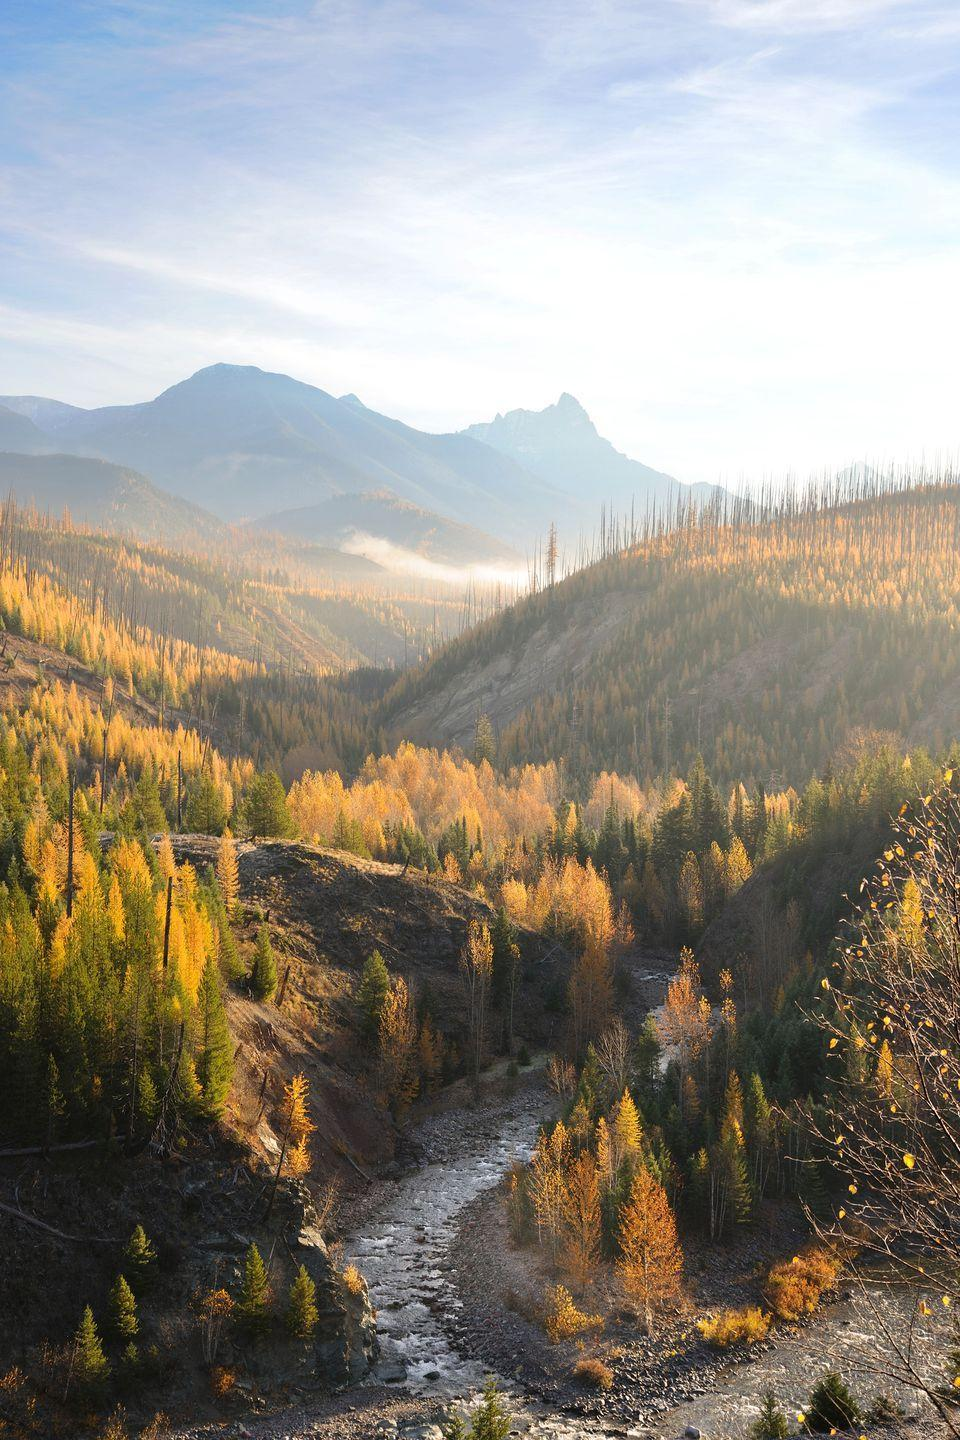 """<p><strong>Where to go:</strong> The larch trees — deciduous conifers that lose their needles — in <a href=""""https://www.nps.gov/glac/planyourvisit/fall.htm"""" rel=""""nofollow noopener"""" target=""""_blank"""" data-ylk=""""slk:Glacier National Park"""" class=""""link rapid-noclick-resp"""">Glacier National Park</a> turn a brilliant gold each October, and more wildlife appears as the animals prepare for winter hibernation. </p><p><strong>When to go: </strong>Mid- or Late October</p><p><a class=""""link rapid-noclick-resp"""" href=""""https://go.redirectingat.com?id=74968X1596630&url=https%3A%2F%2Fwww.tripadvisor.com%2FHotels-g143026-Glacier_National_Park_Montana-Hotels.html&sref=https%3A%2F%2Fwww.redbookmag.com%2Flife%2Fg34045856%2Ffall-colors%2F"""" rel=""""nofollow noopener"""" target=""""_blank"""" data-ylk=""""slk:FIND A HOTEL"""">FIND A HOTEL</a></p><p><strong>RELATED: <a href=""""https://www.goodhousekeeping.com/life/travel/g26239097/best-airlines/"""" rel=""""nofollow noopener"""" target=""""_blank"""" data-ylk=""""slk:The Best Airlines in the World Will Make You Love Flying Again"""" class=""""link rapid-noclick-resp"""">The Best Airlines in the World Will Make You Love Flying Again</a></strong></p>"""